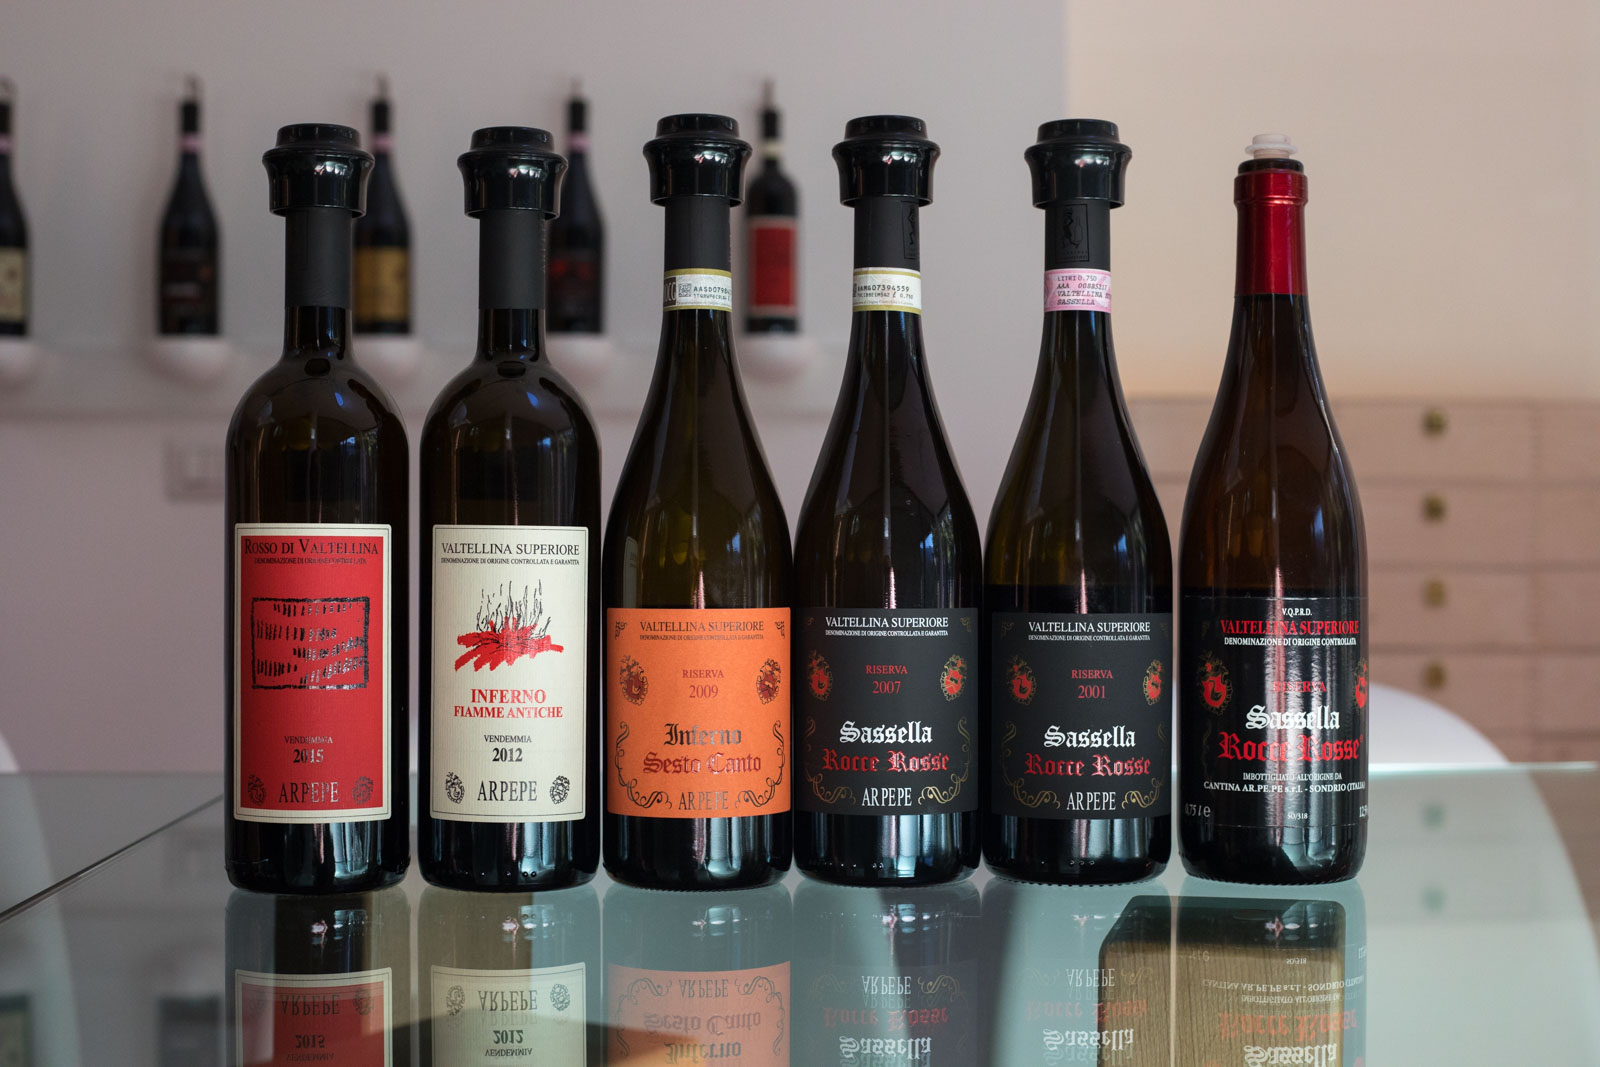 The wines of ARPEPE. Every one of them is different, despite coming from the same grape. And every one of them earned my highest rating. ©Kevin Day/Opening a Bottle.